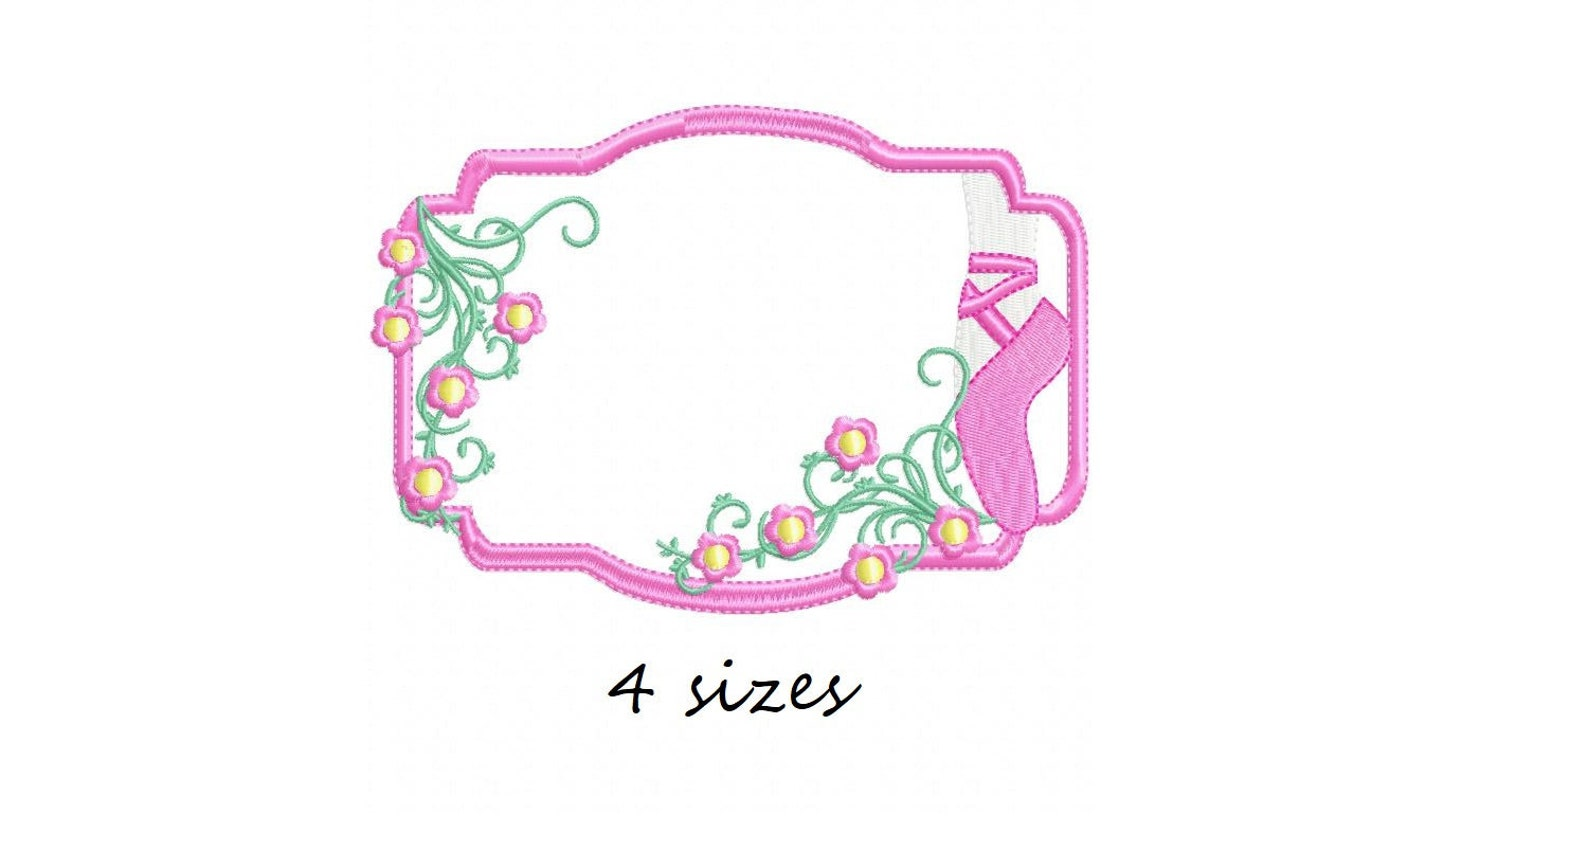 ballerina shoe frame embroidery designs frame embroidery design ballerina machine embroidery pattern ballet embroidery file ball